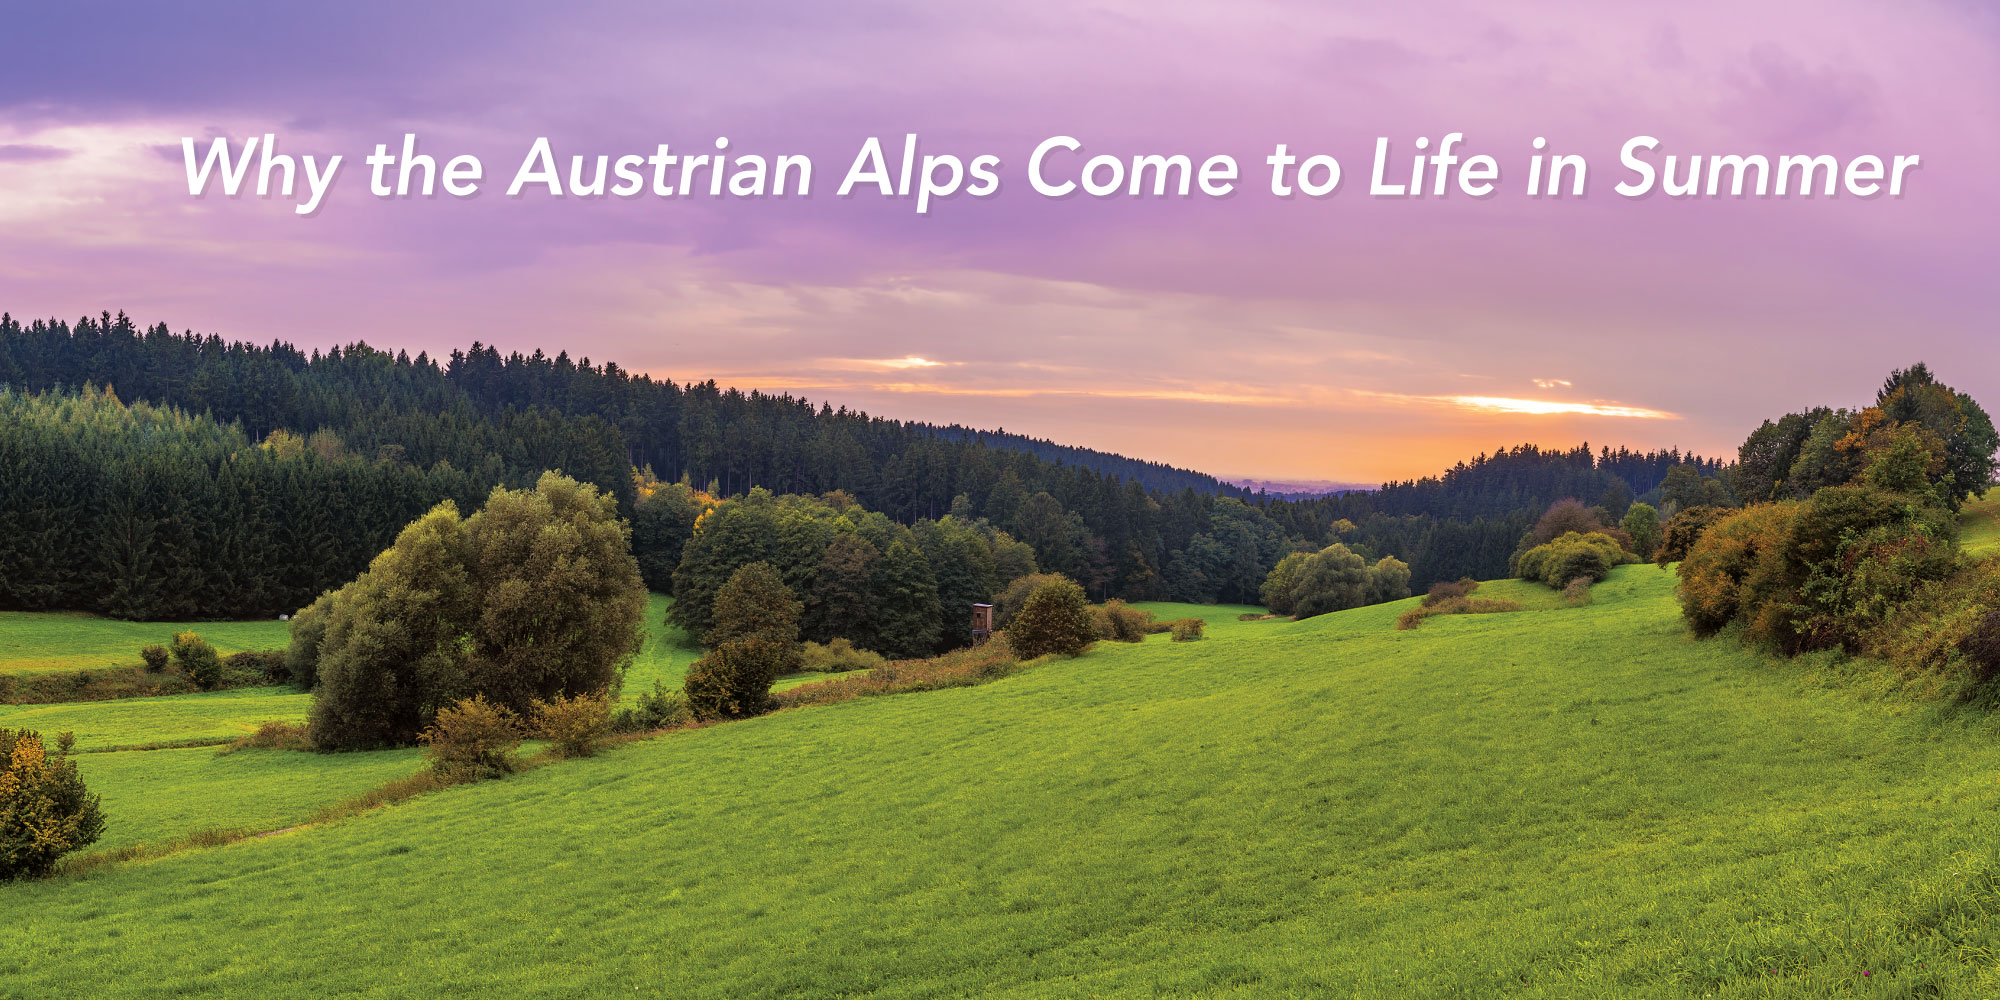 Large green fields and trees in Austrian Alps